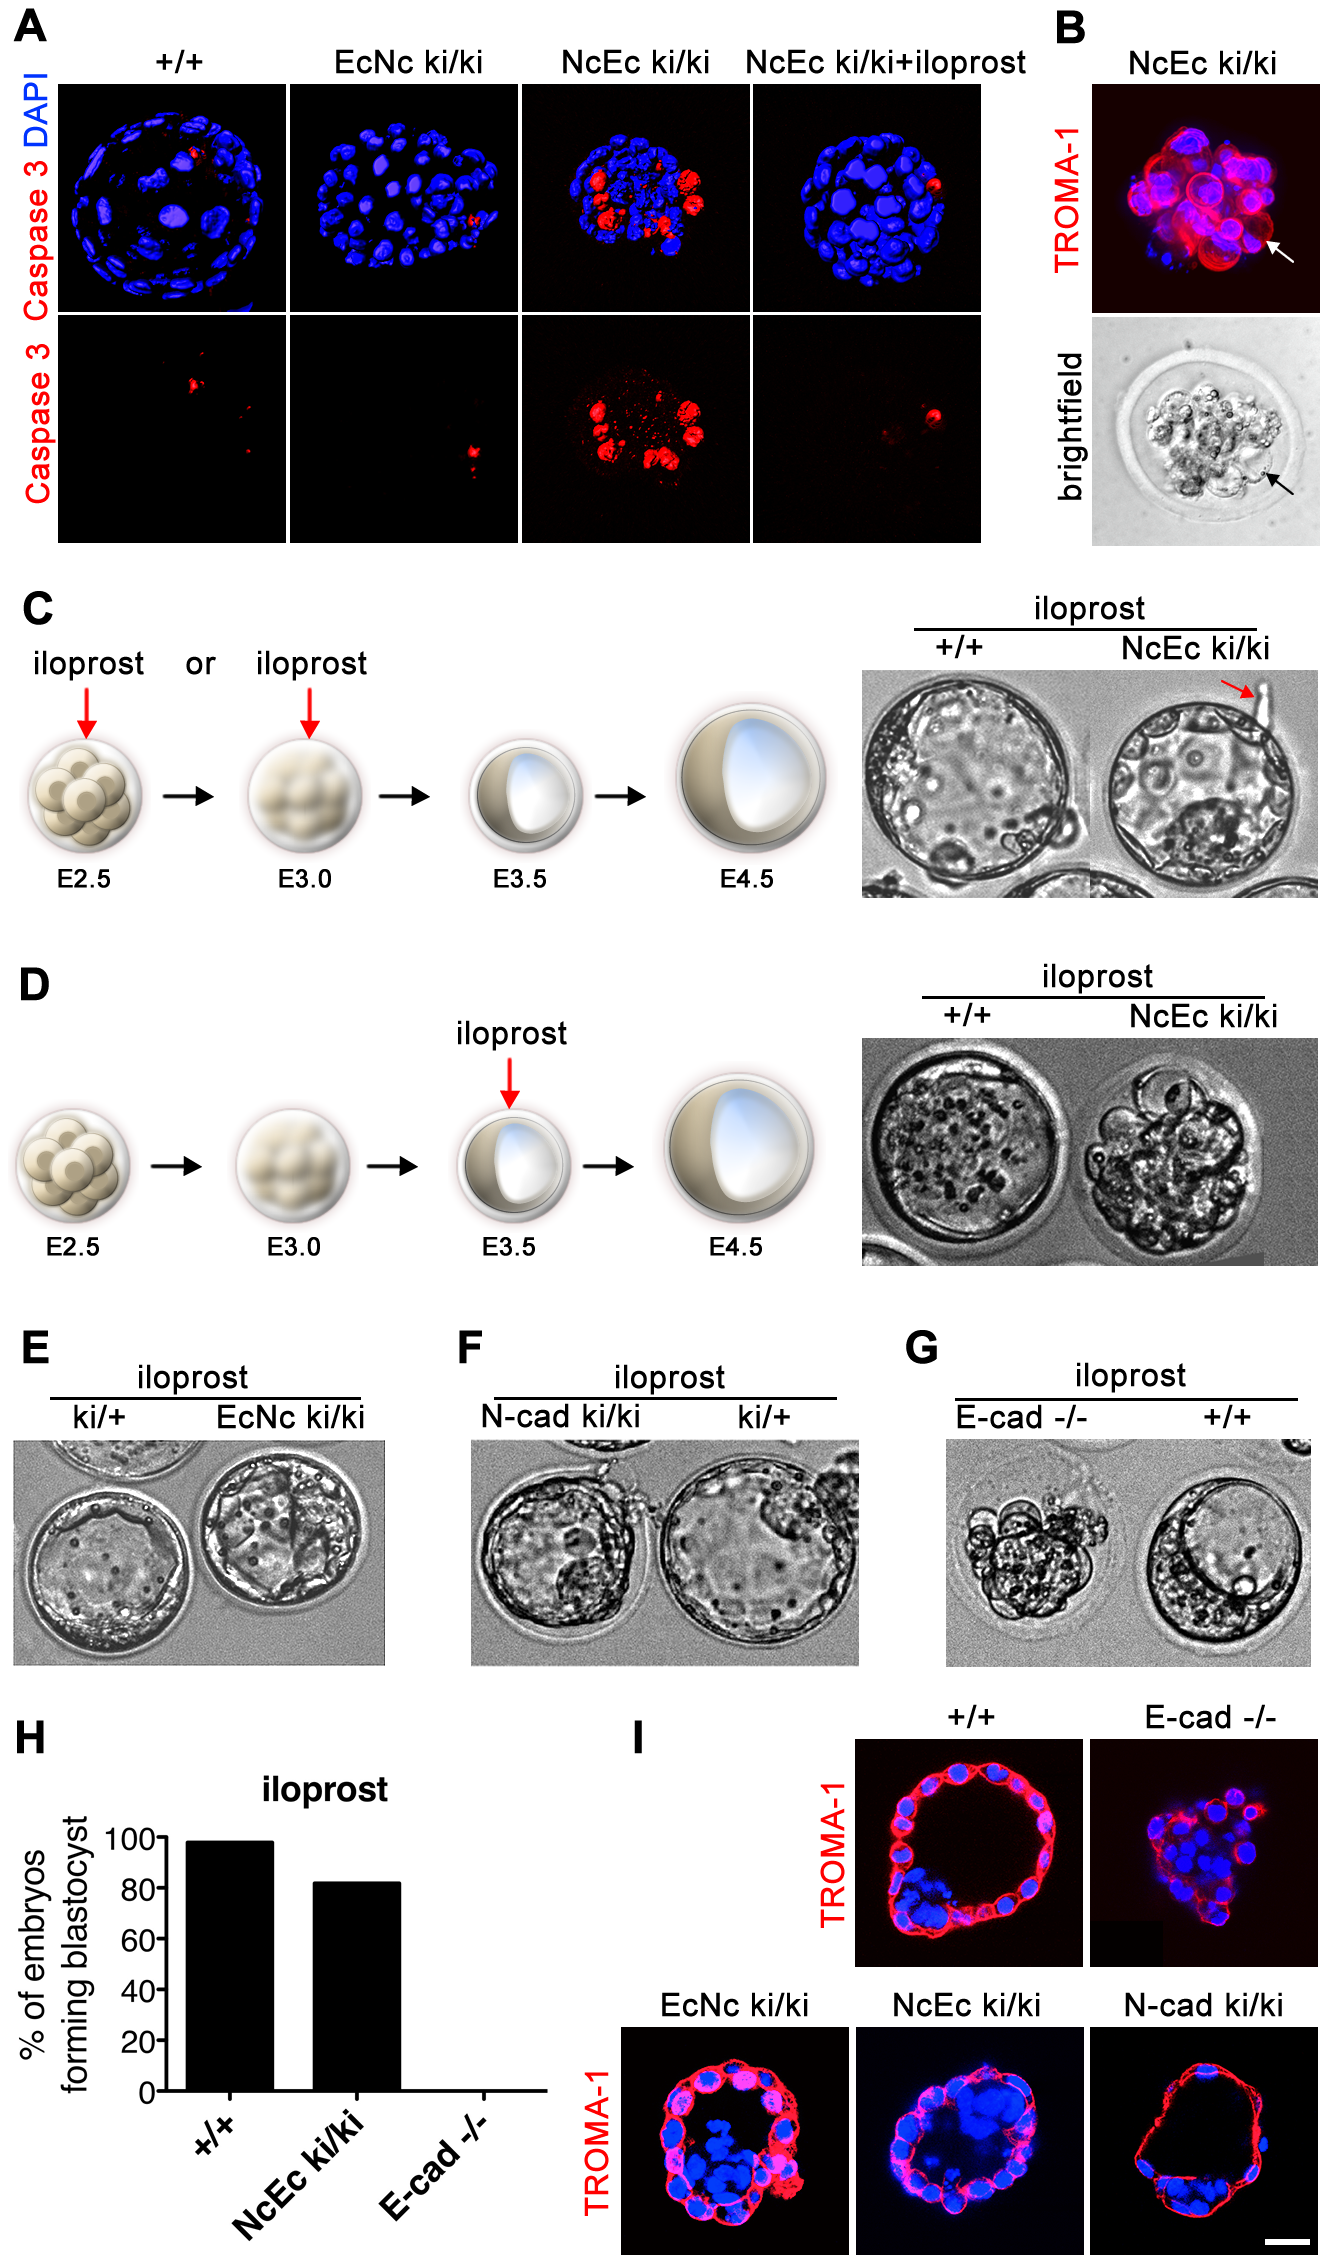 Increased apoptosis is detected in the outer cells of homozygous NcEc embryos and is blocked by iloprost treatment, rescuing blastocyst formation.